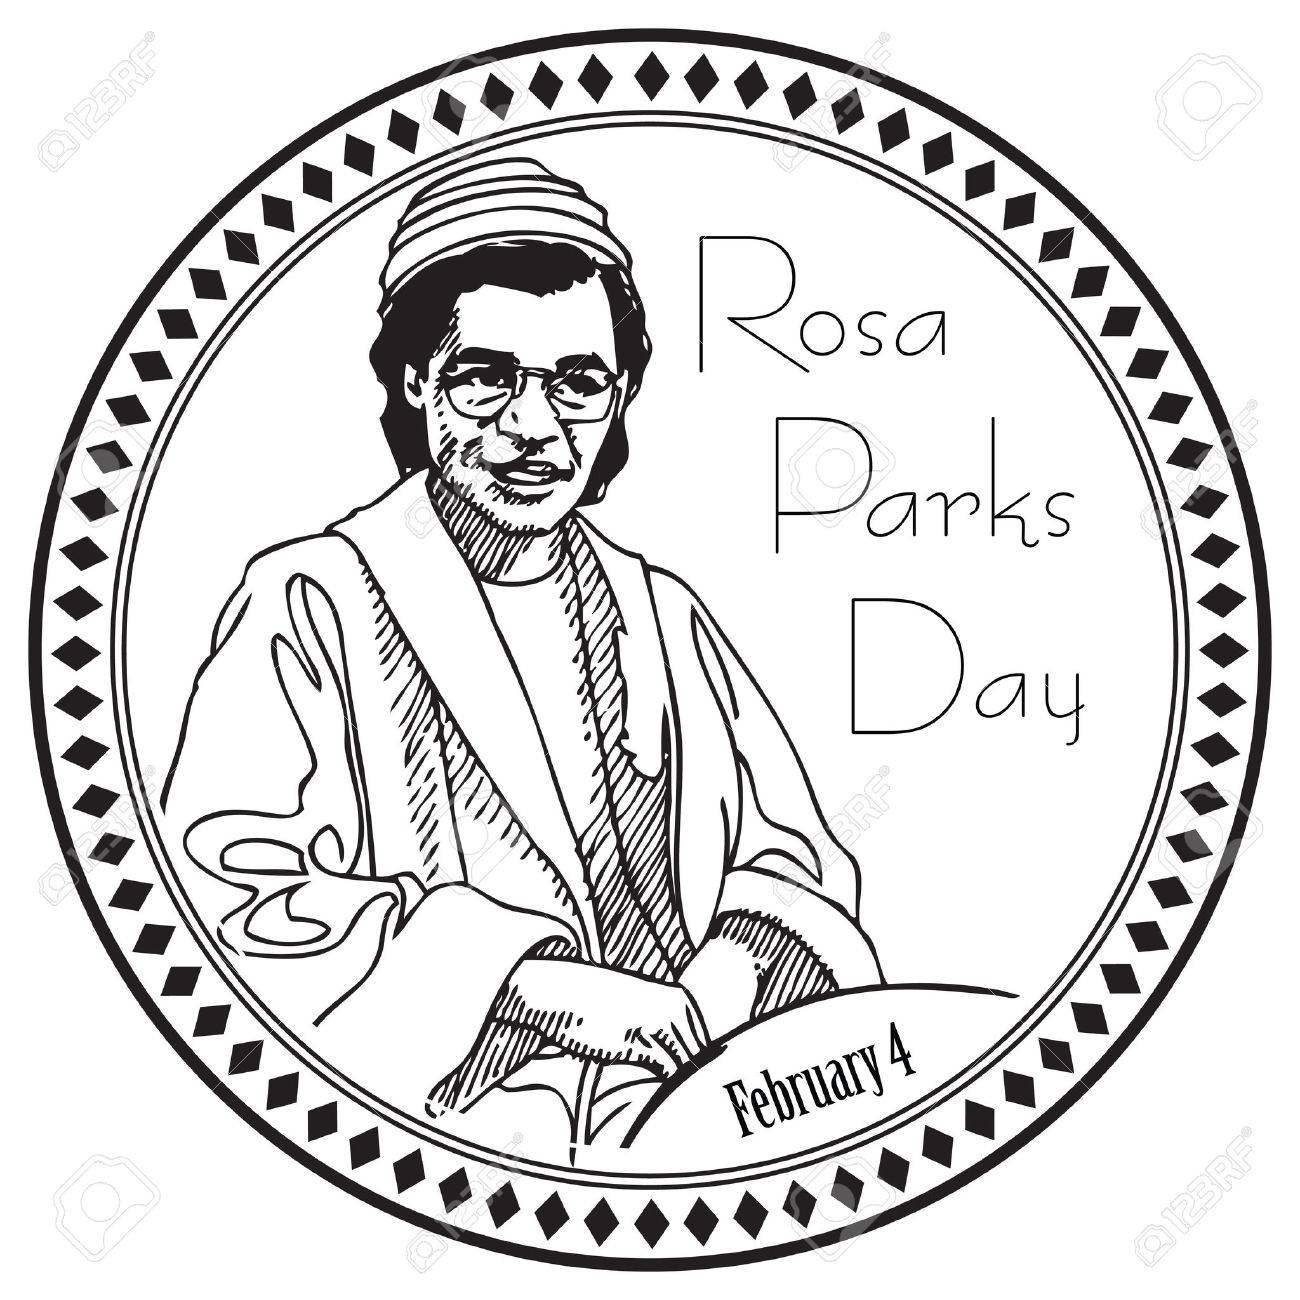 hight resolution of stamp imprint for the holiday rosa parks day the event is marked on february 4